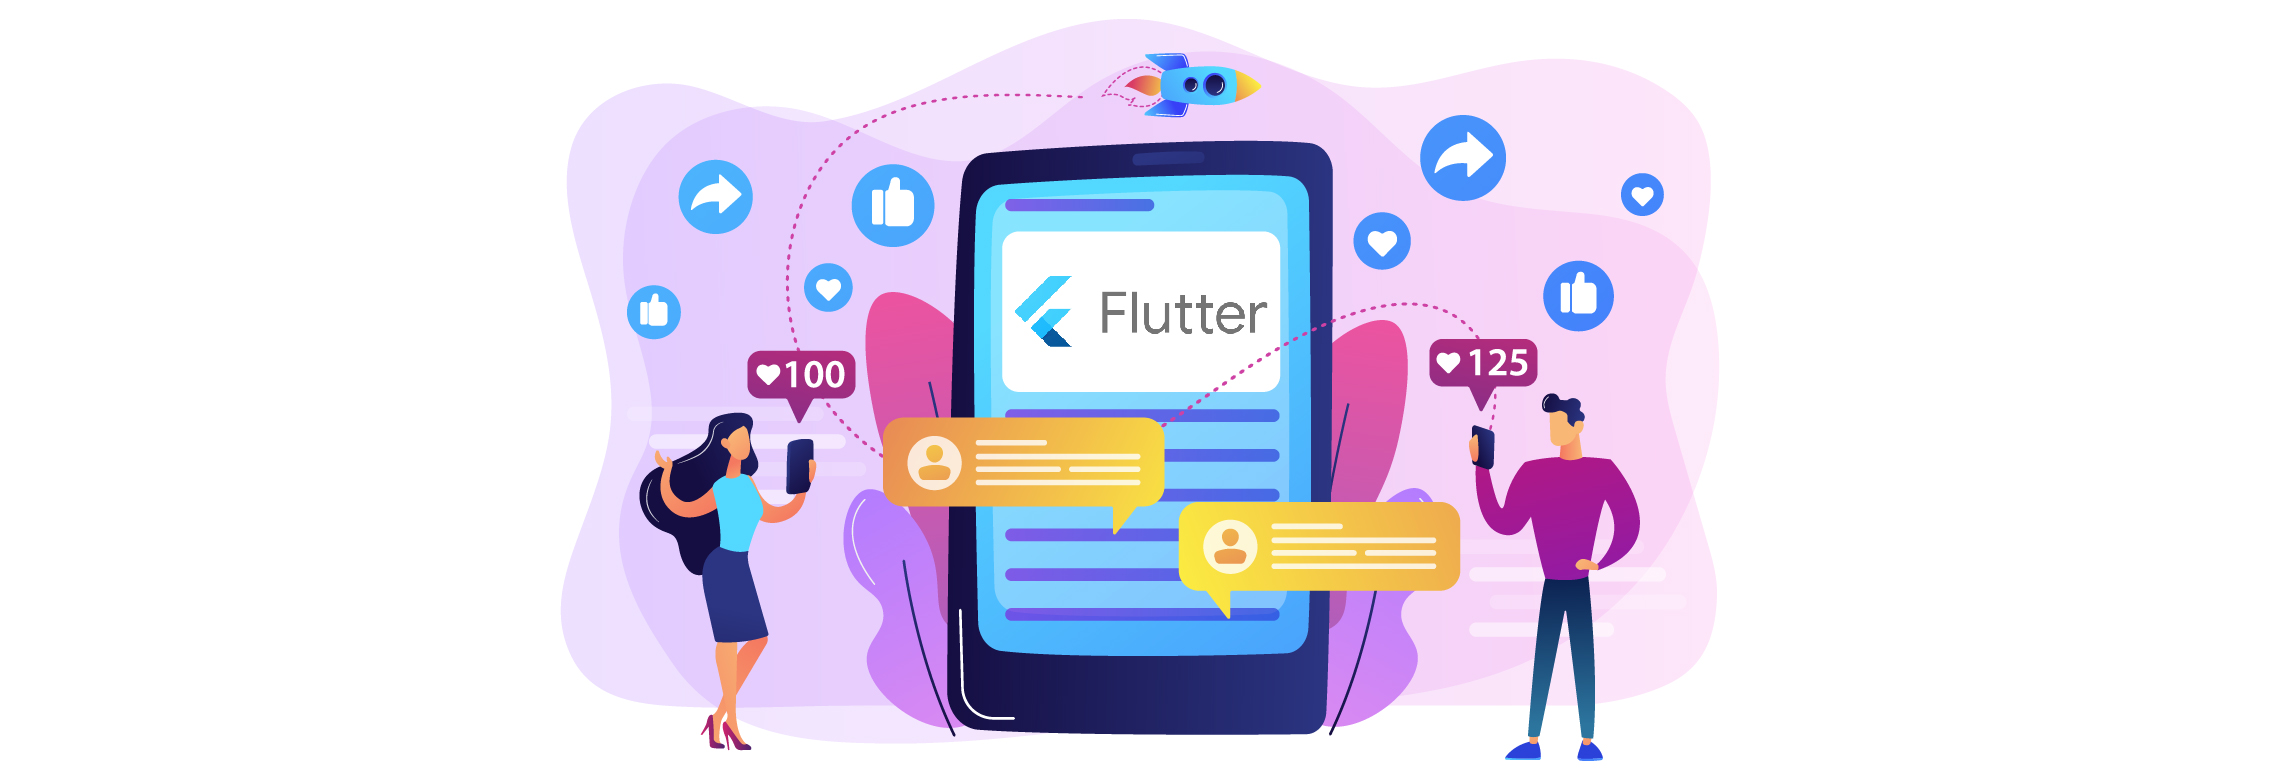 Why Flutter is a Powerful Game-changer